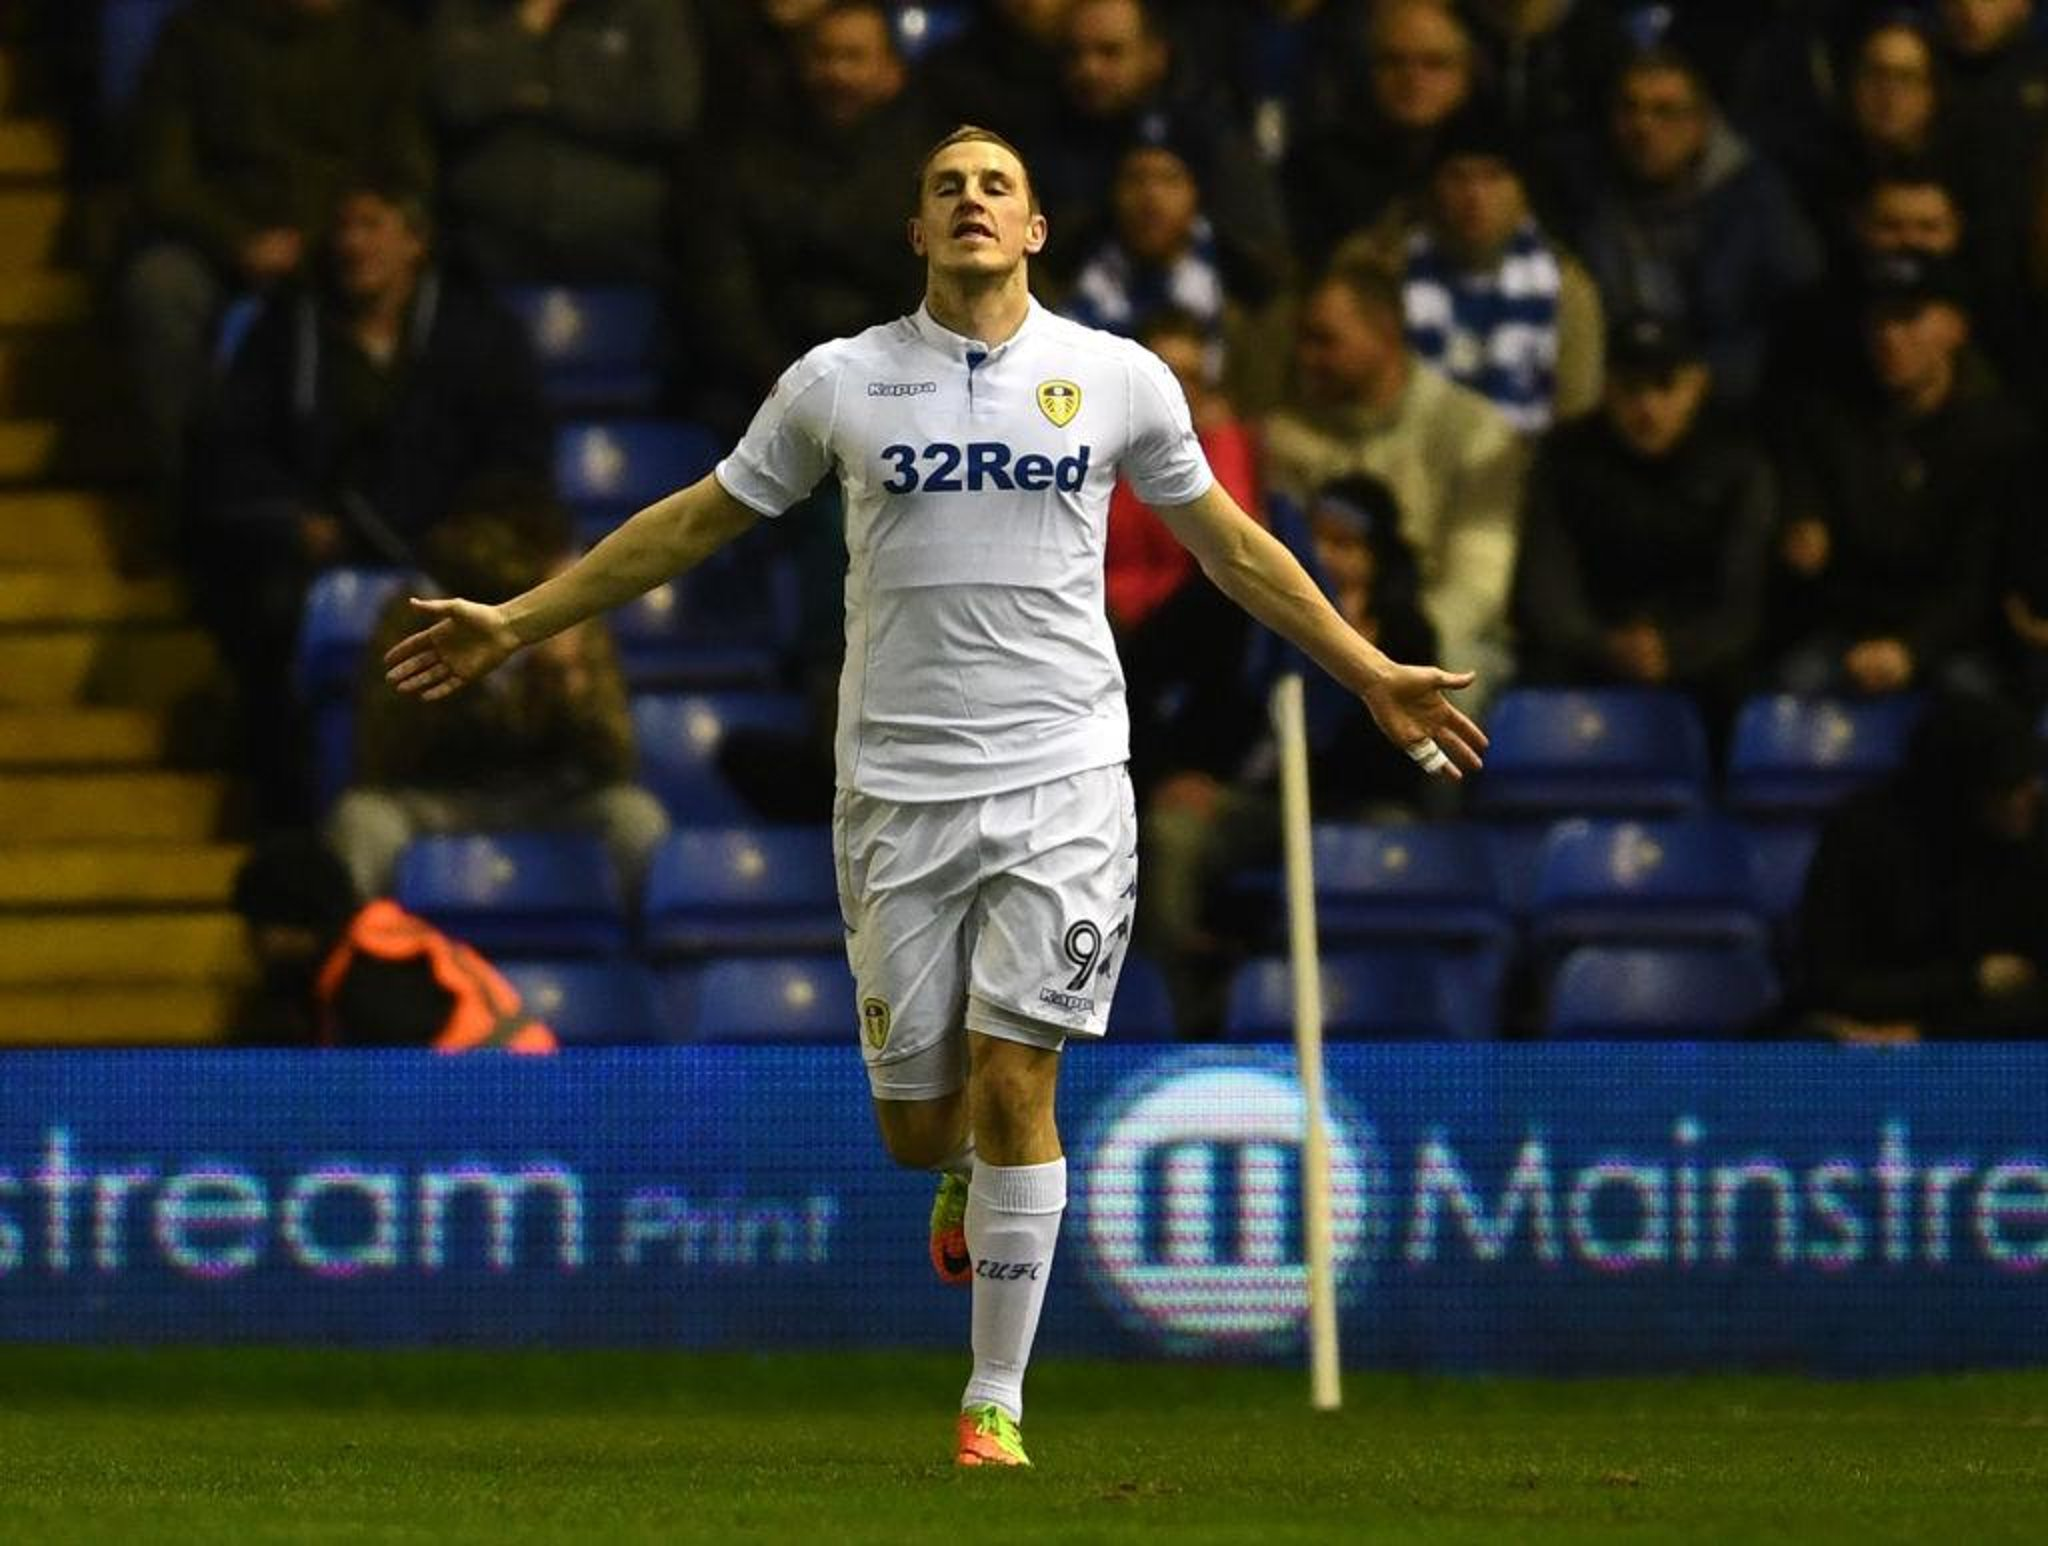 Leeds United v Brighton and Hove Albion: What happened to Garry Monk's starting XI that last BEAT the Seagulls?